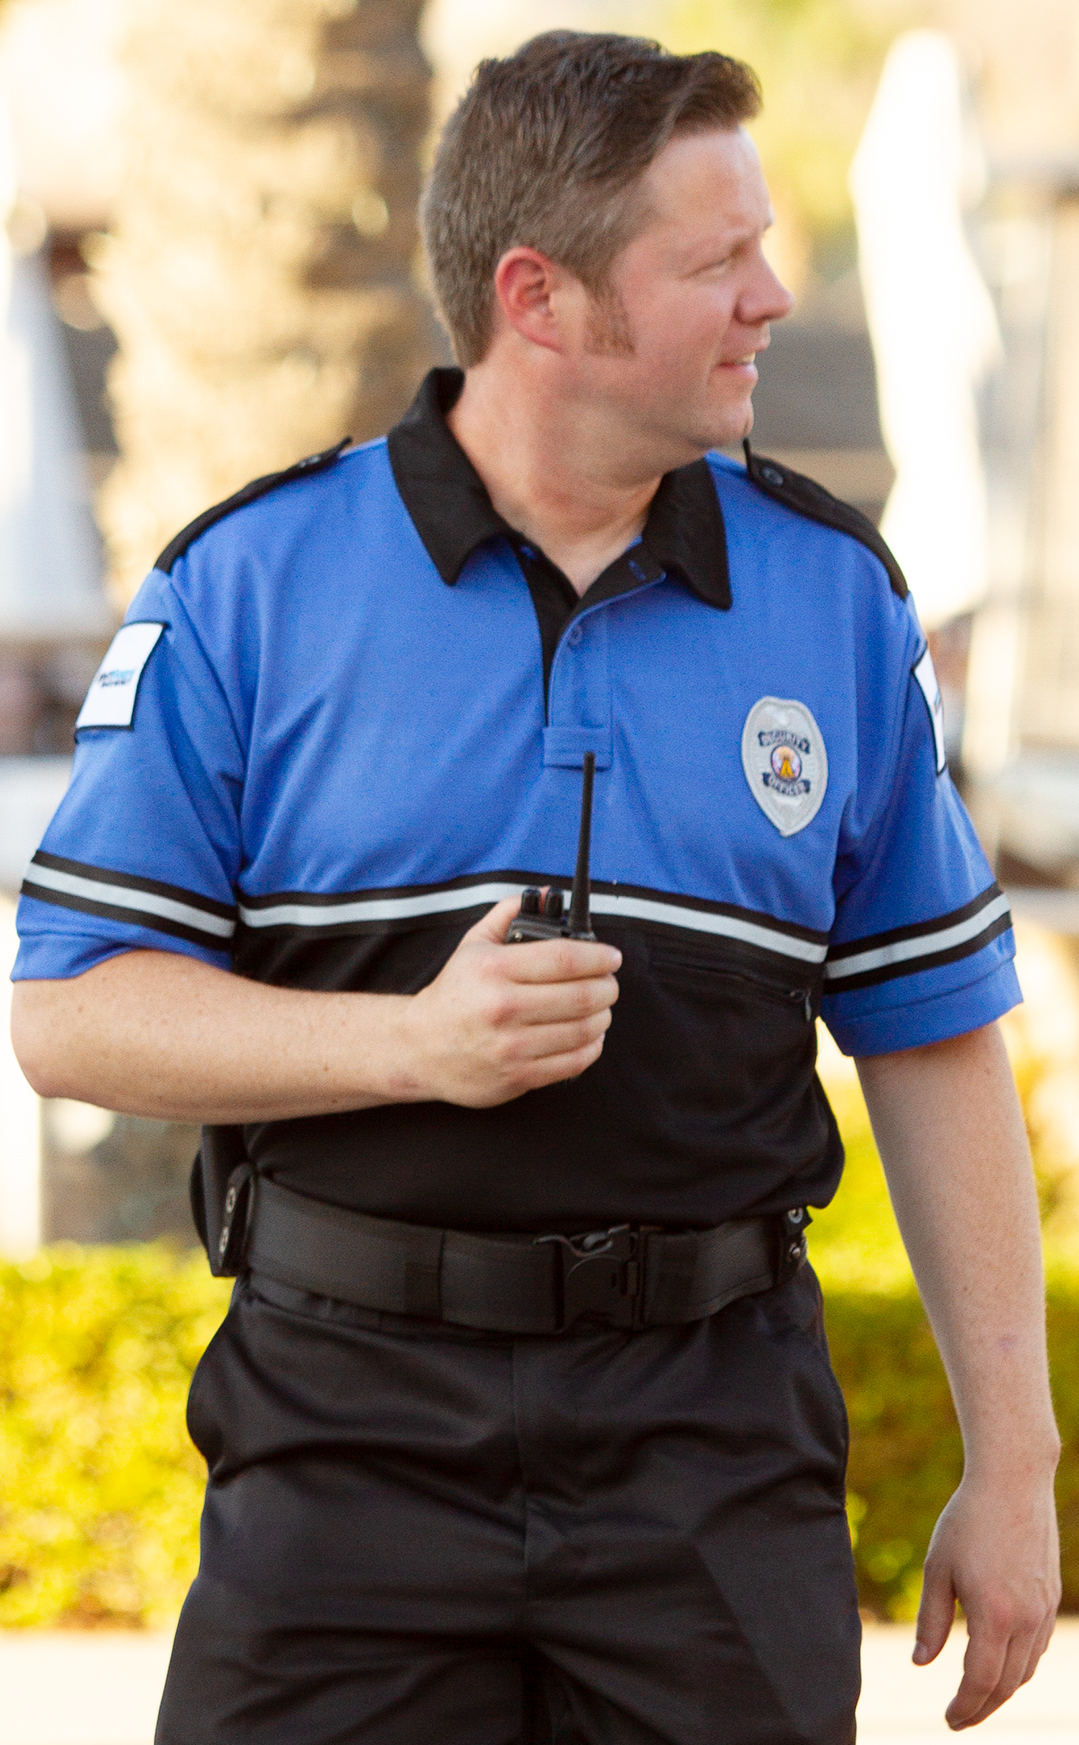 about Direct Guard Services